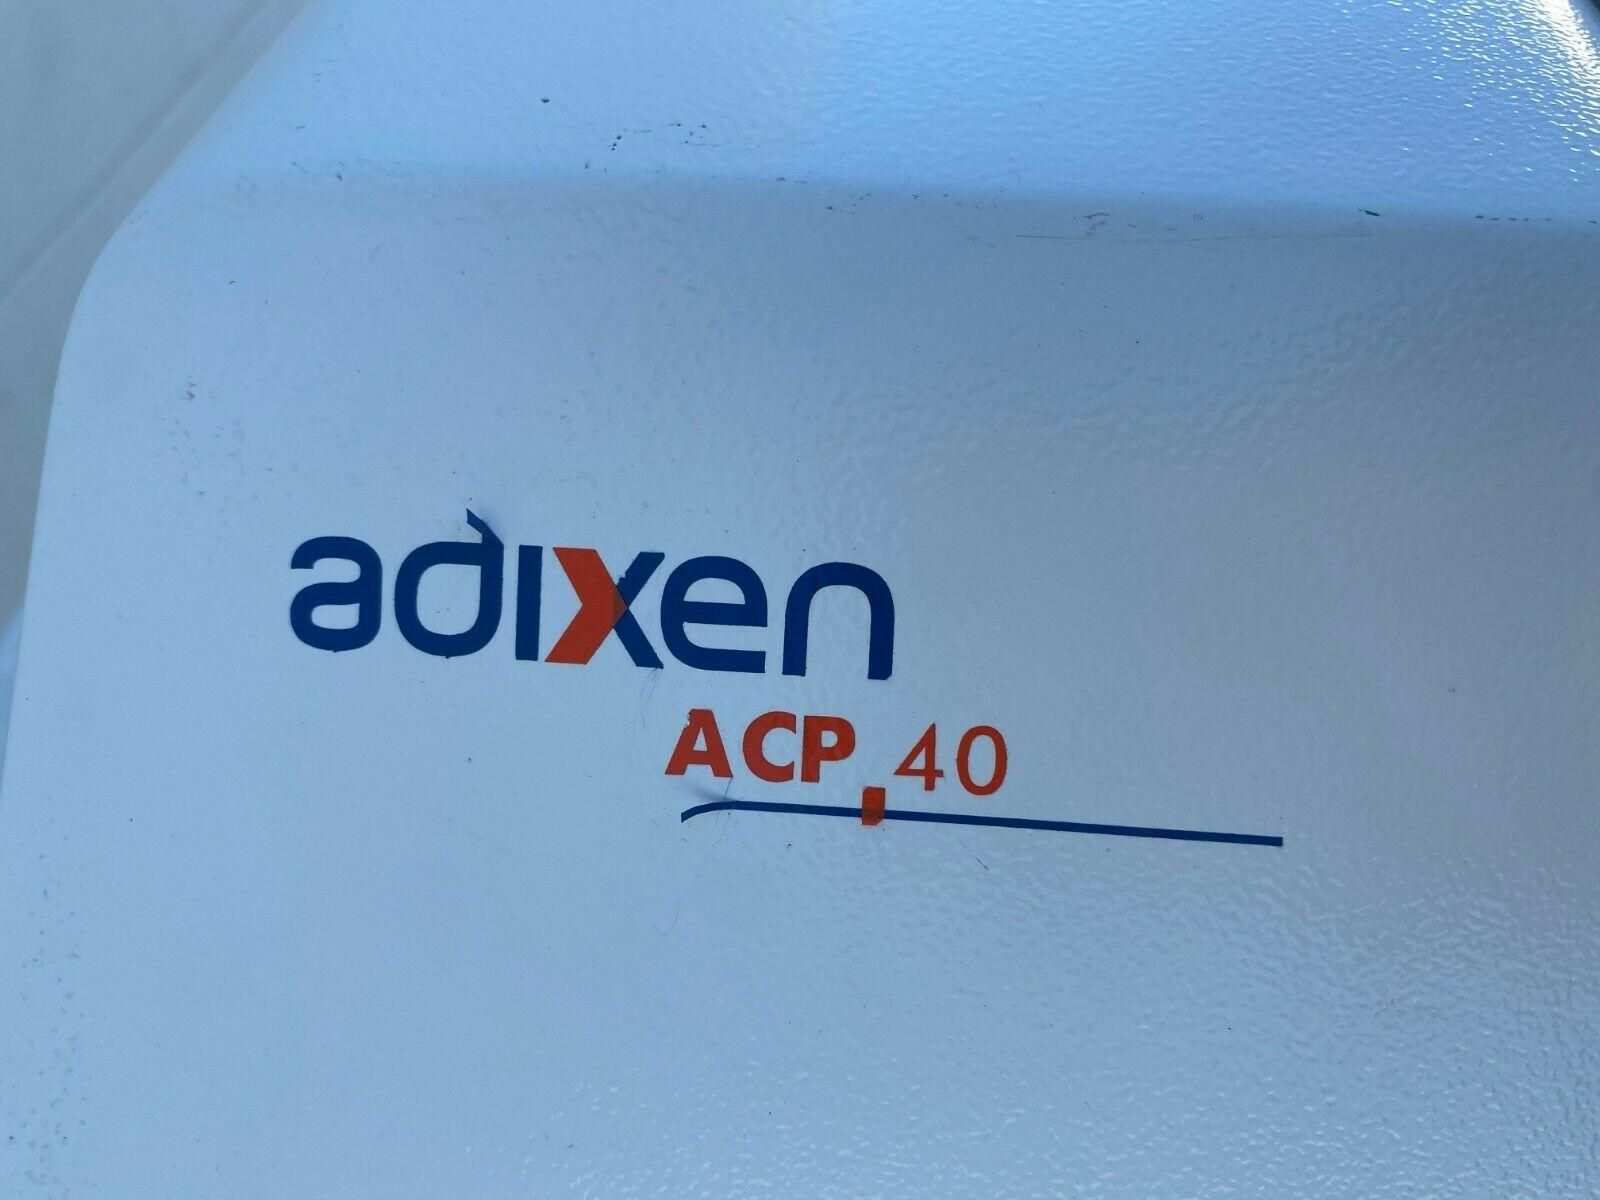 ADIXEN ACP-40 DRY COMPACT MULTI-STAGE ROOTS PUMP